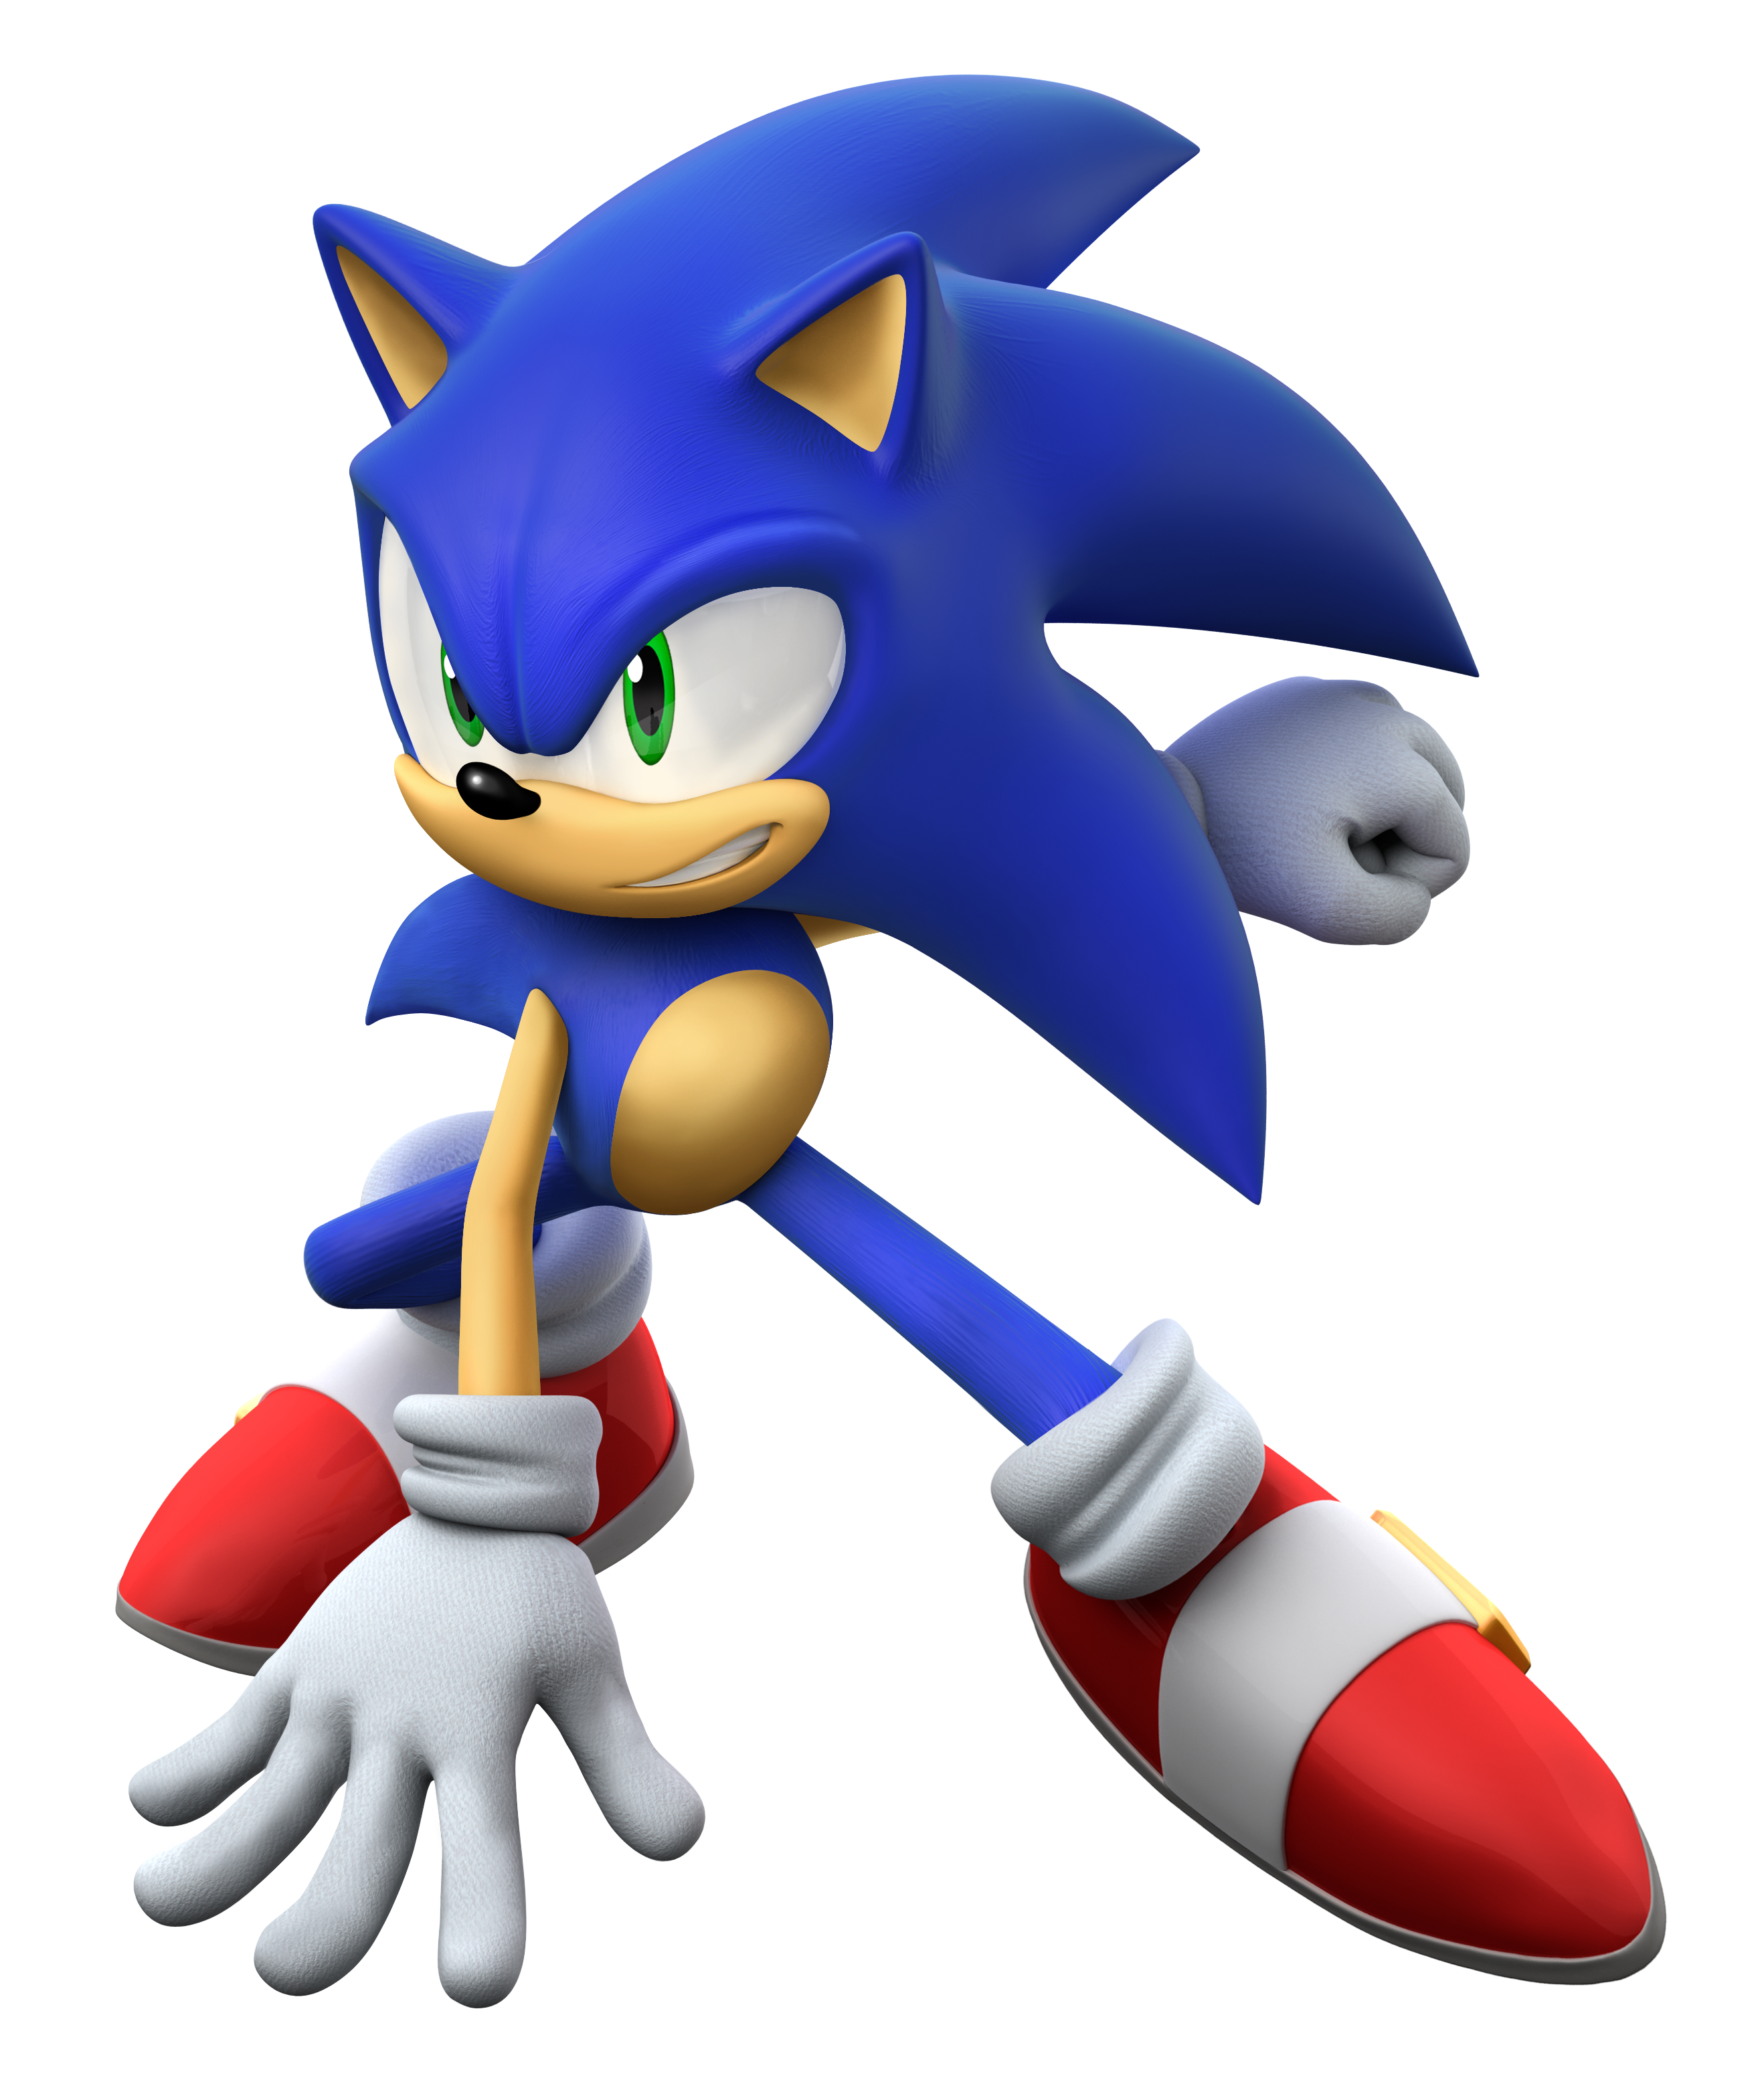 Bild - Sonic The Hedgehog Wallpaper by Prowermaster.png – SonicWiki